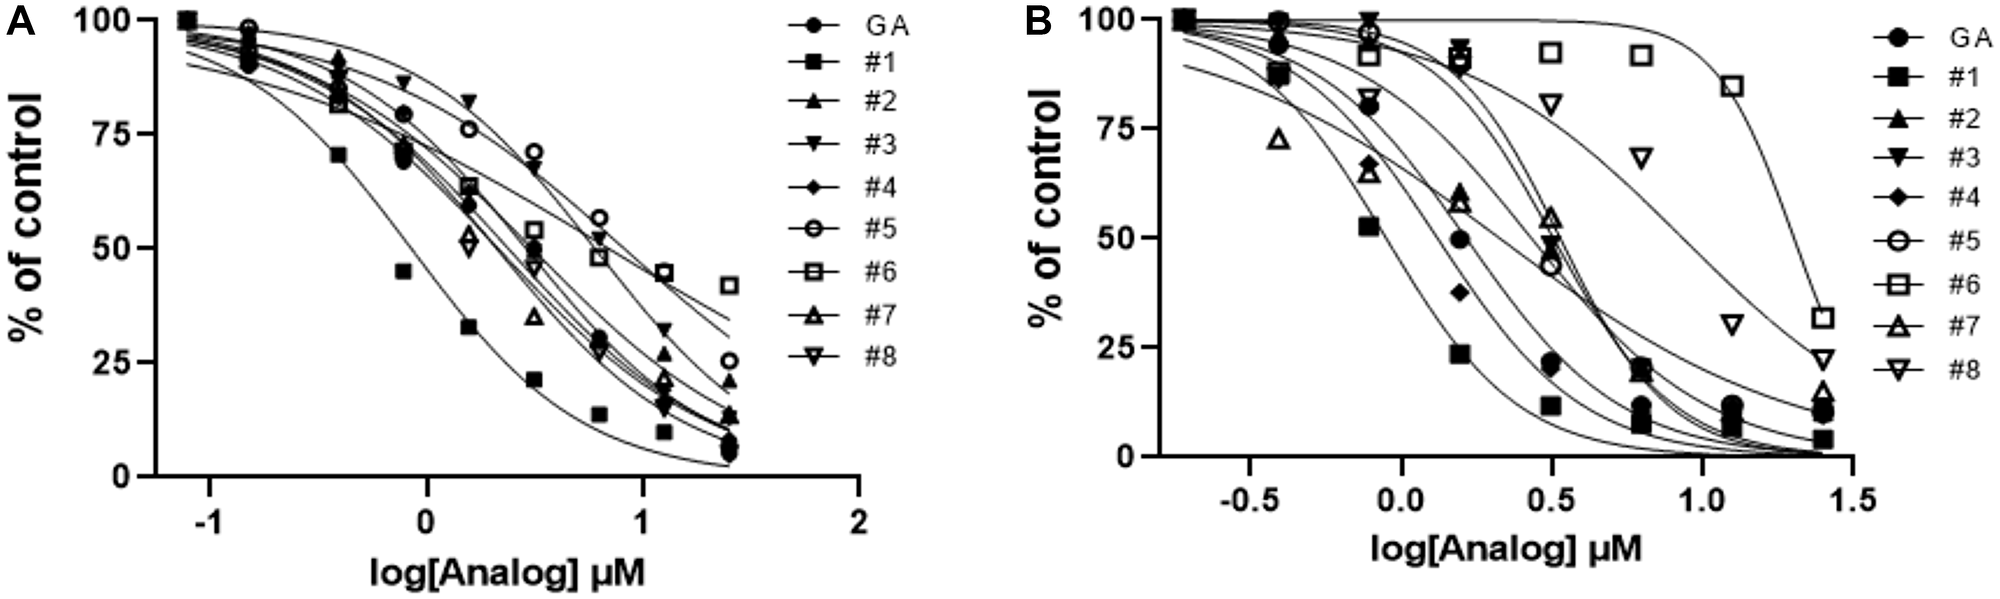 Activity profiles of analogs of gambogic acid in vitro (AlphaScreen) and in vivo (HPV+ cell line assays).